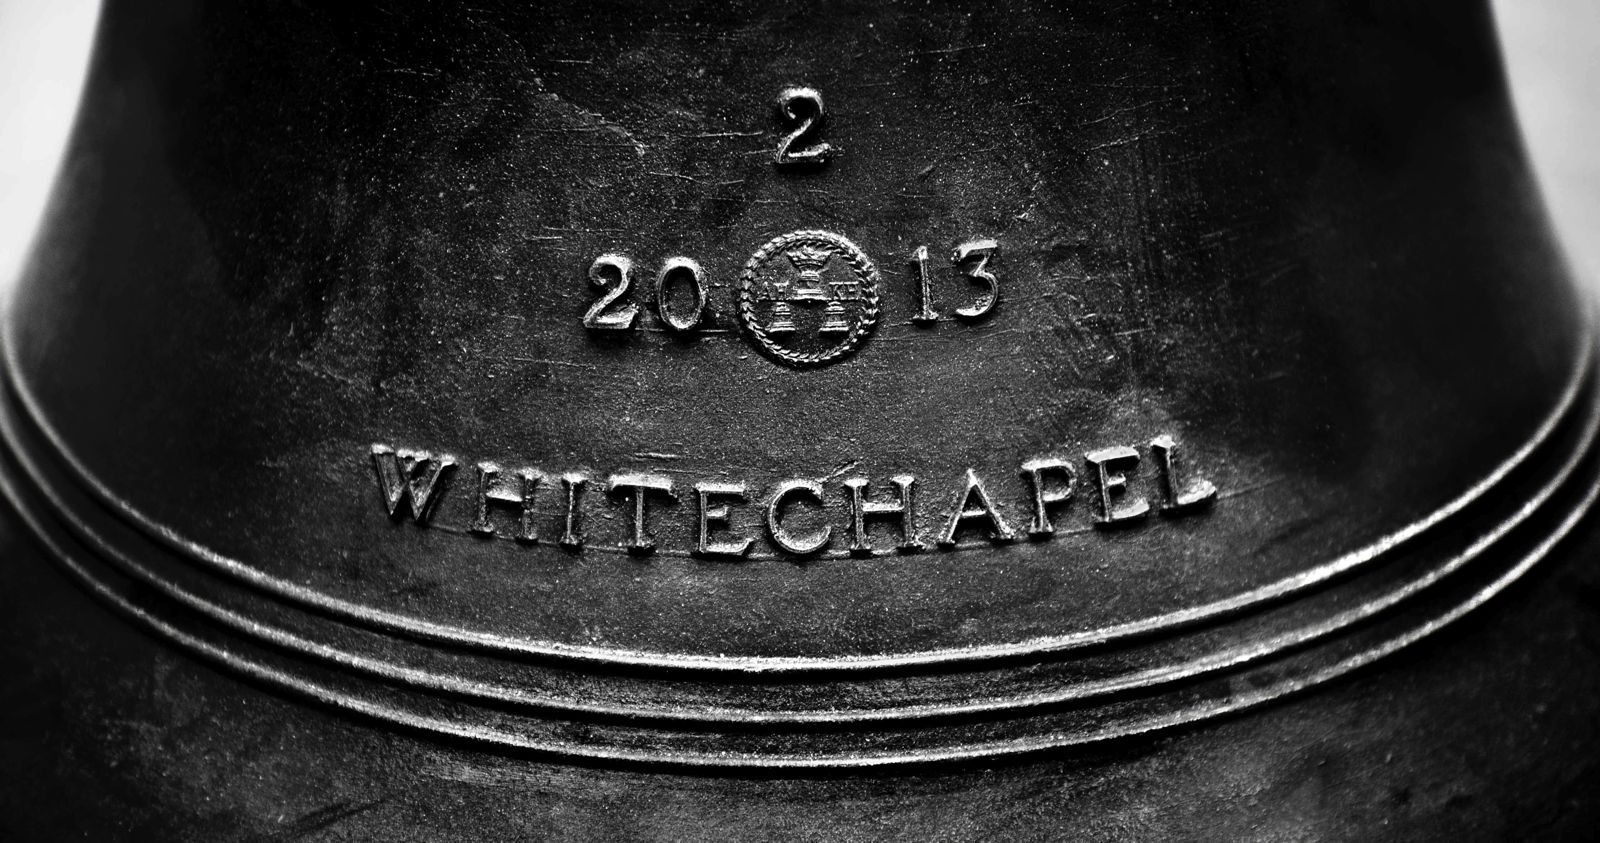 A Local's Guide: 9 Of The Best Places To Discover in Whitechapel, London (9)